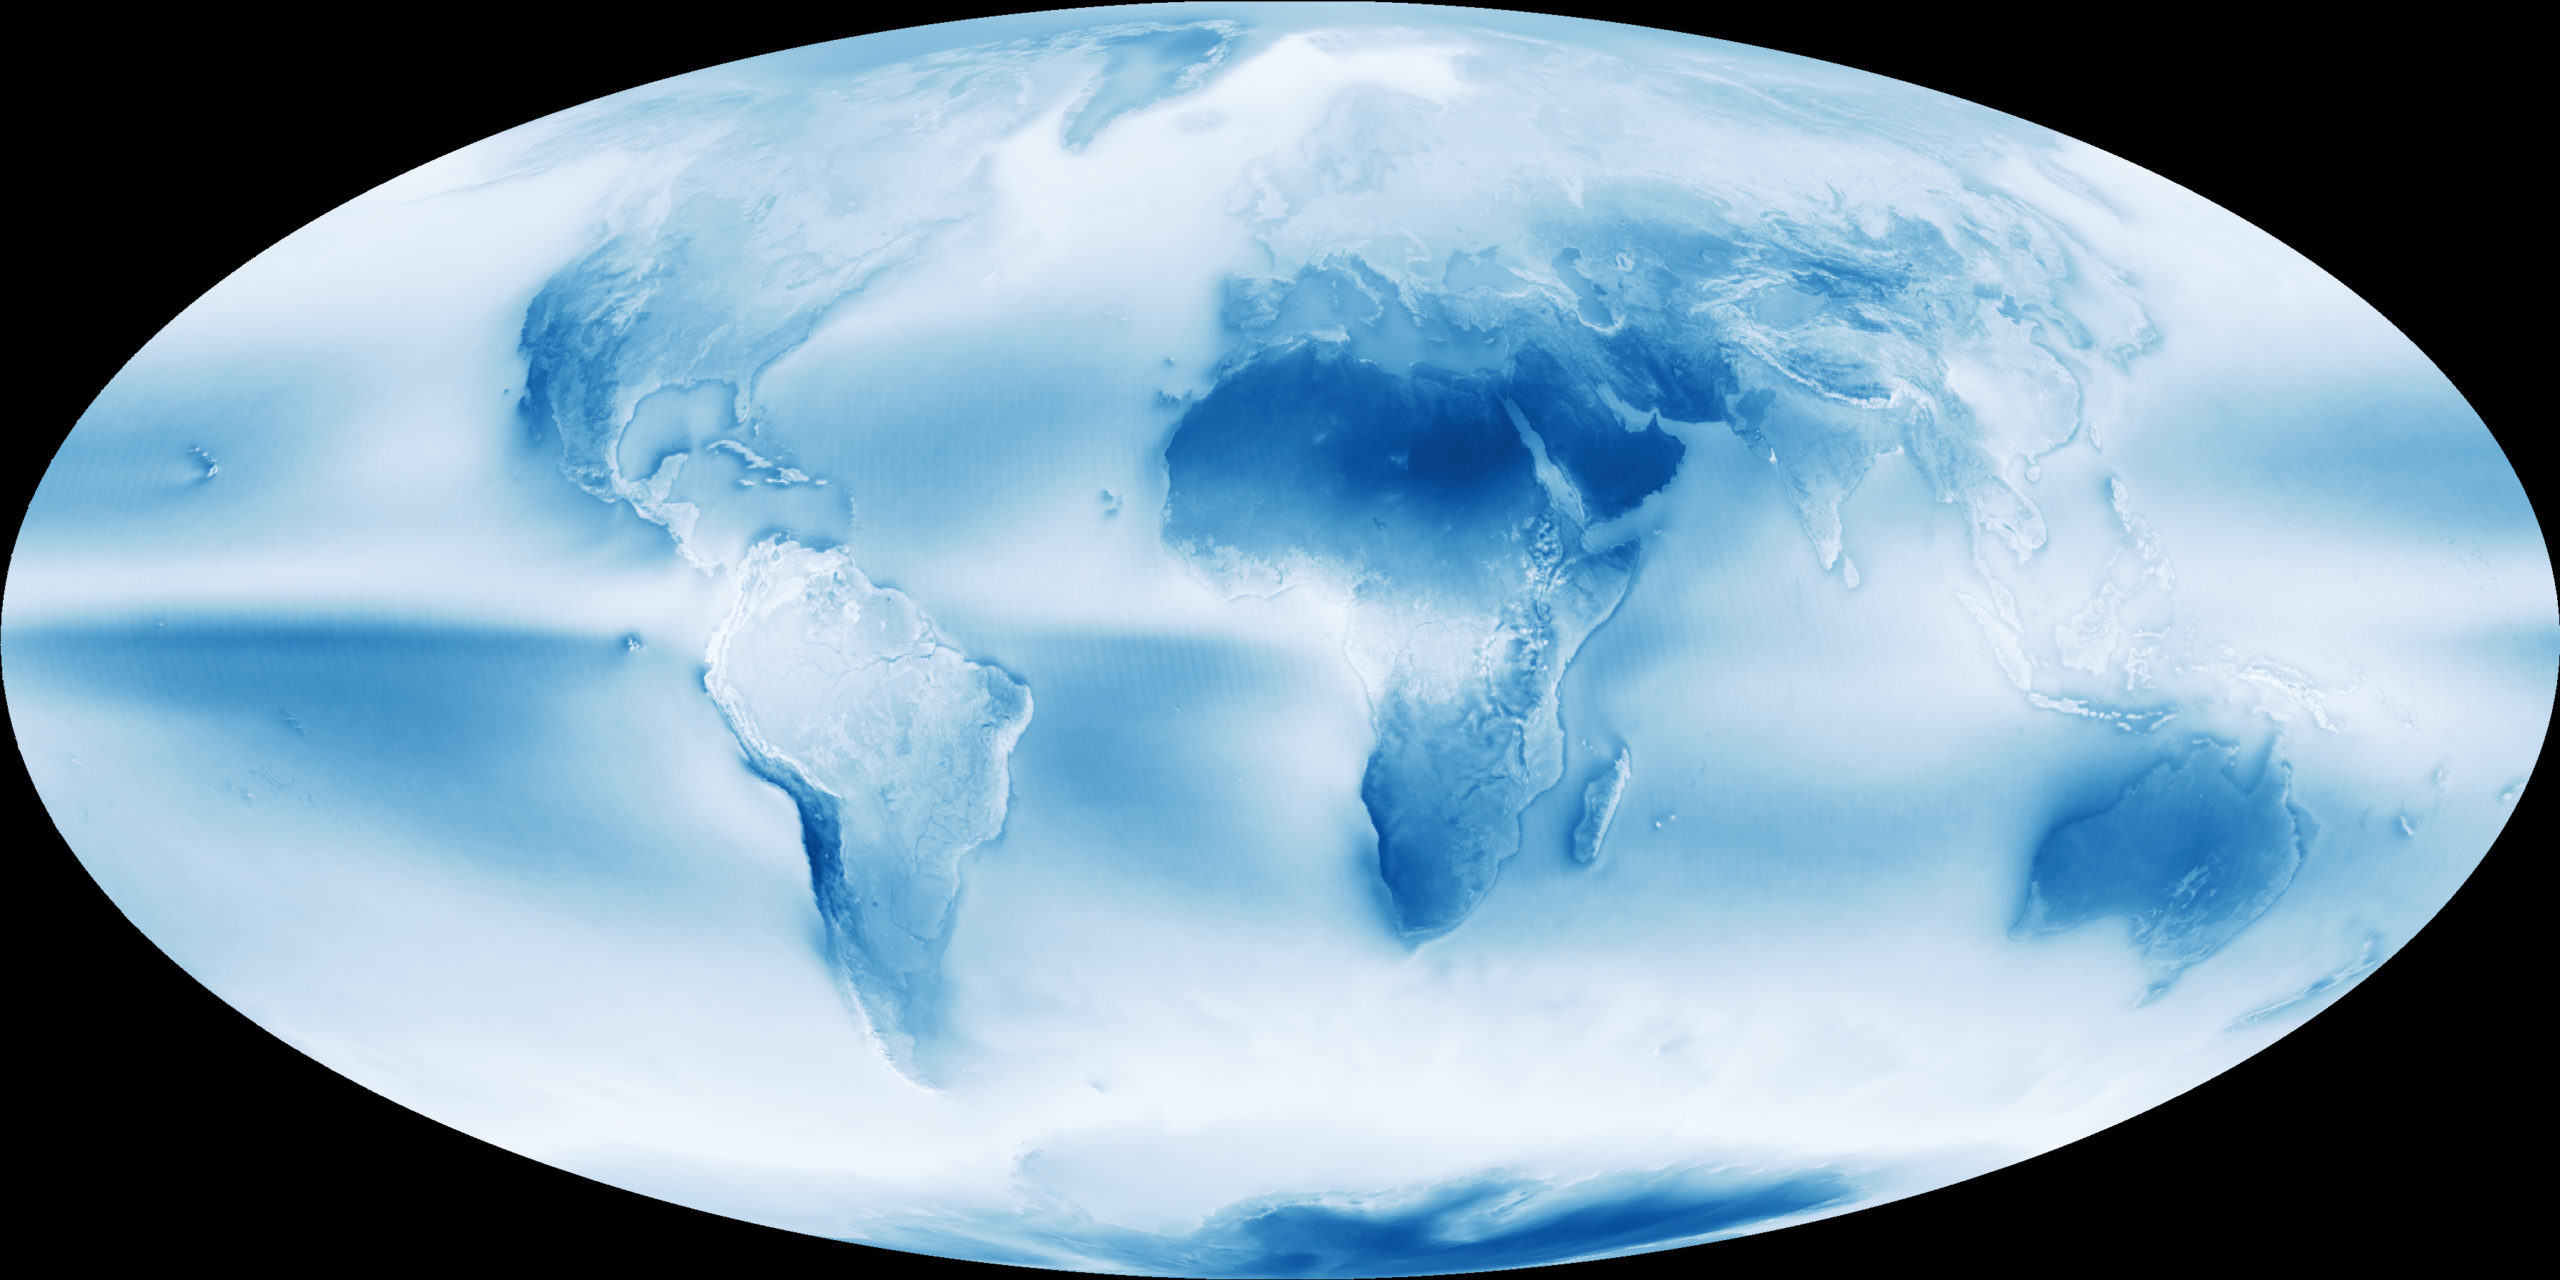 Photograph of cloudy earth in blue and white.